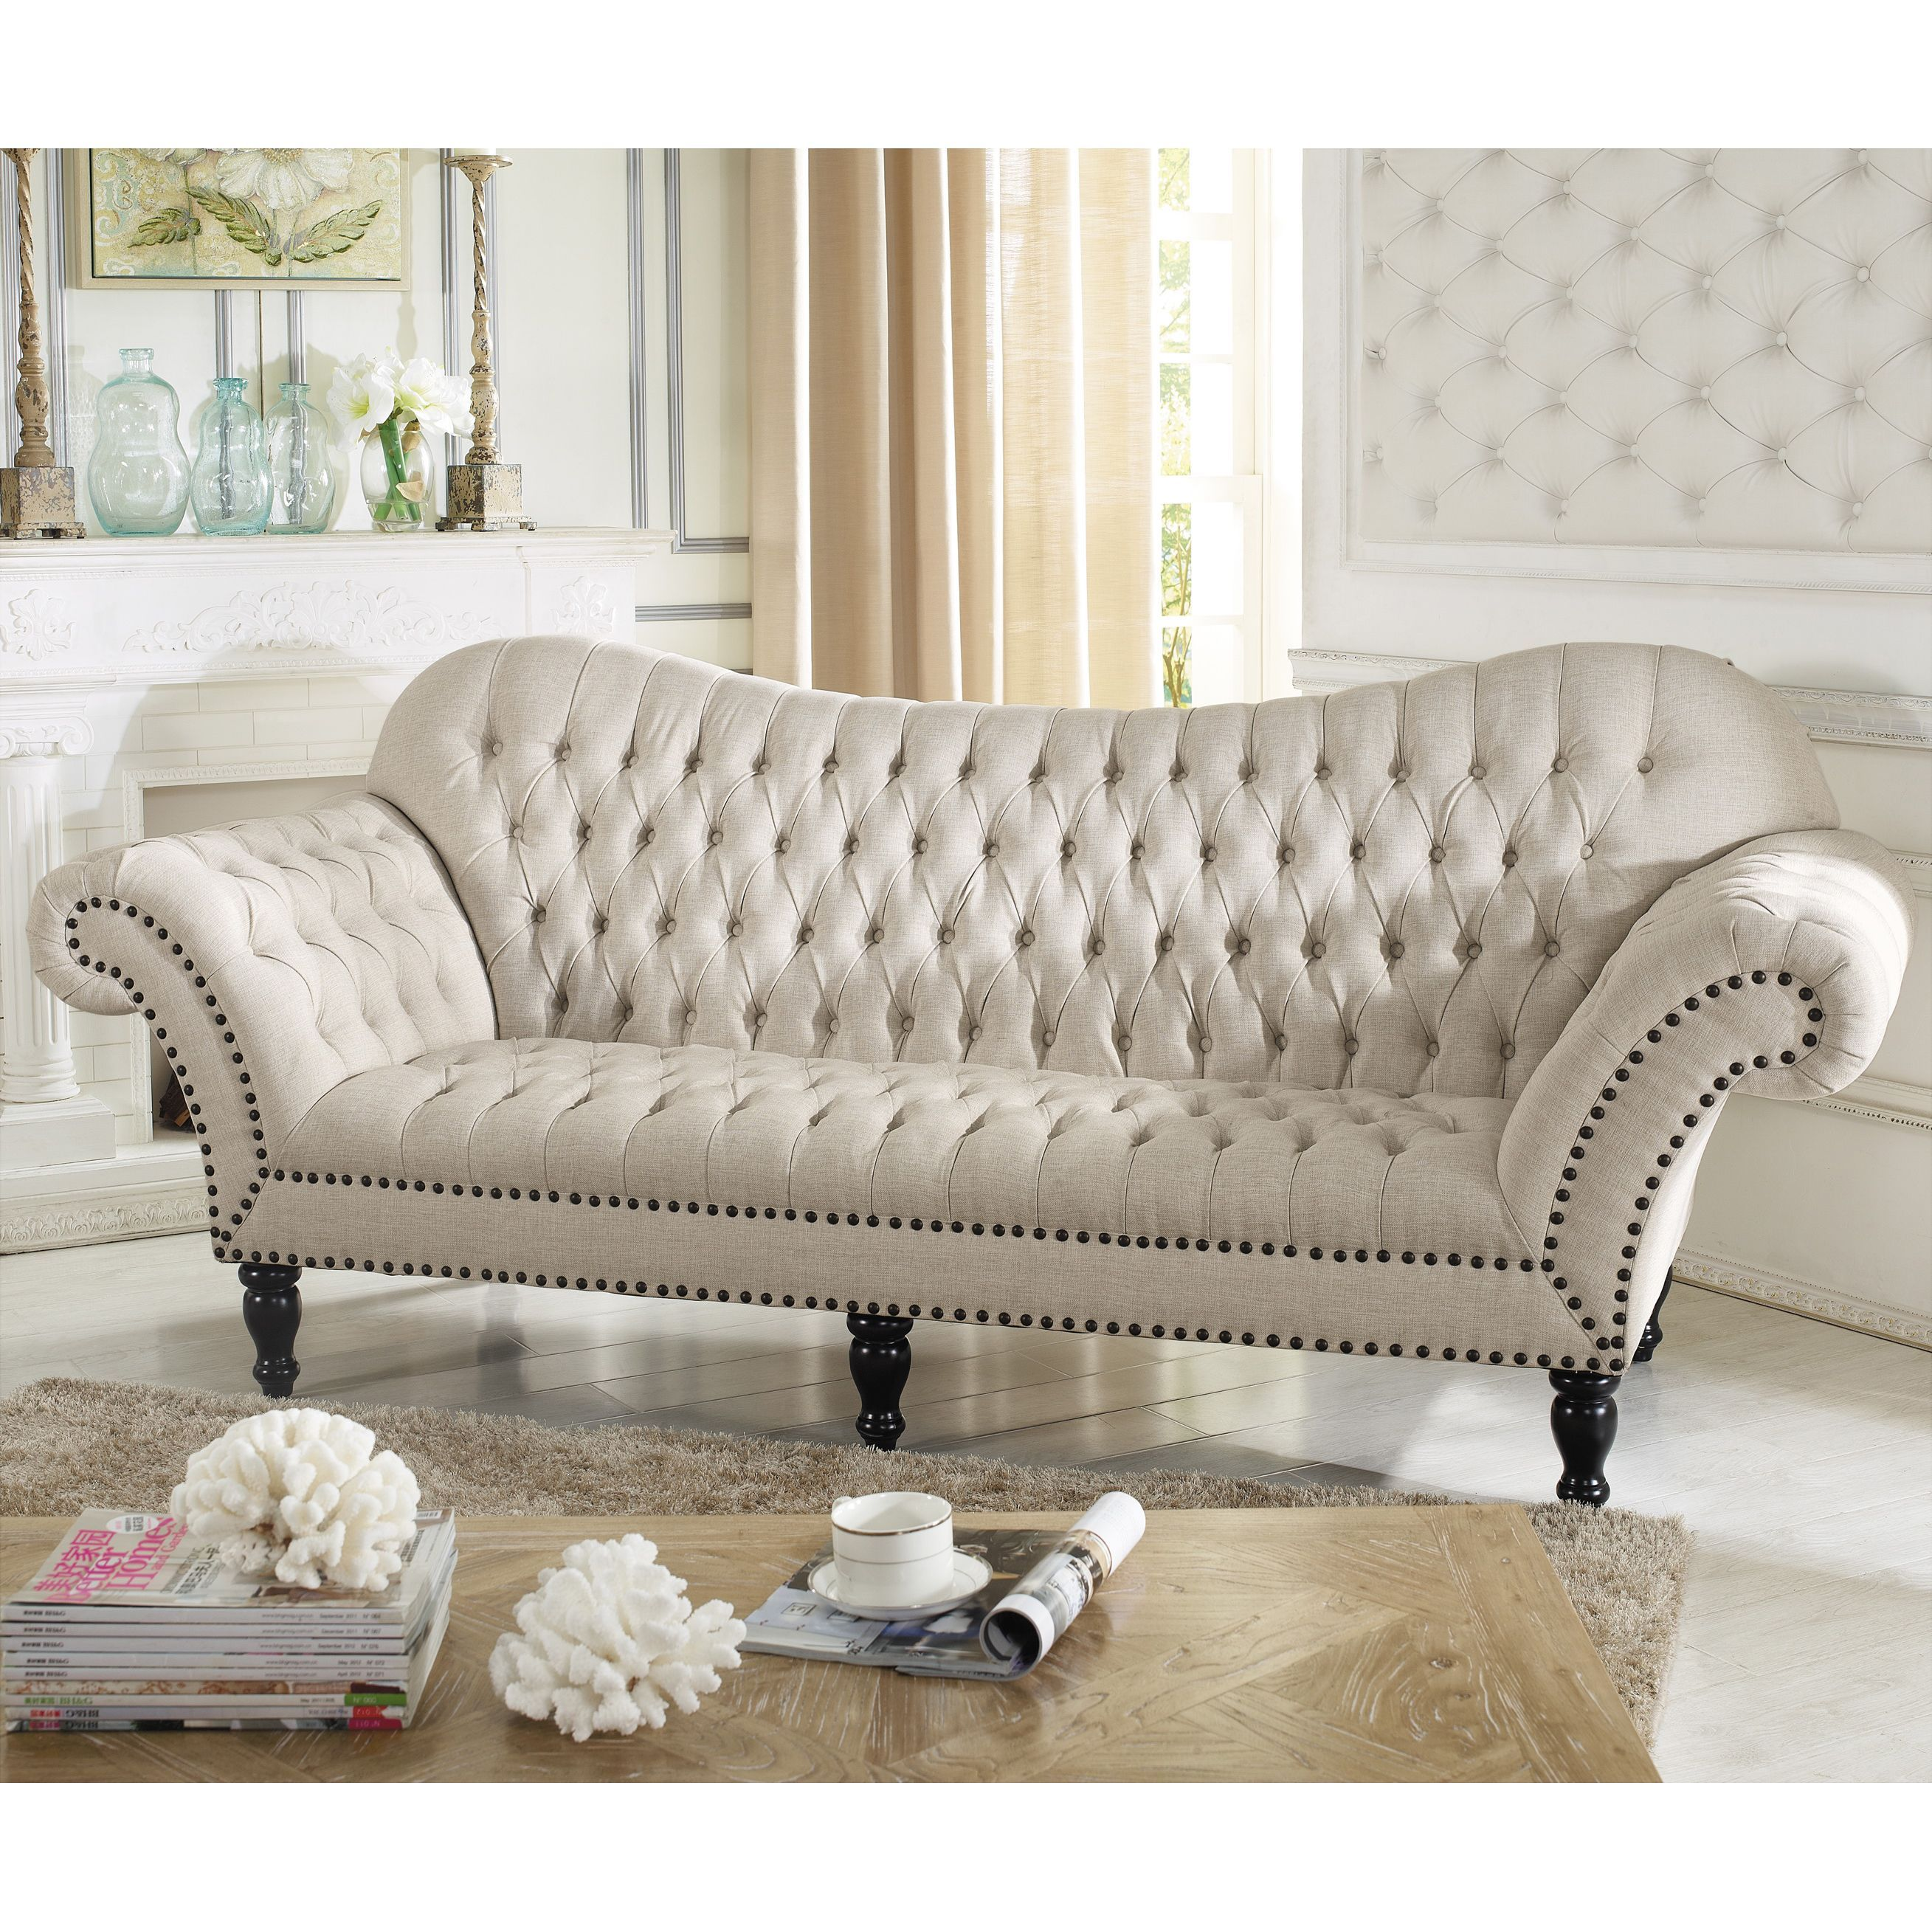 Fanciful With Ornate Detail, Lovers Of All Things Tufted And Feminine Will  Fall For The Bostwick Sofau0027s Old World Appeal. Updated With Simple Beige  Linen ...